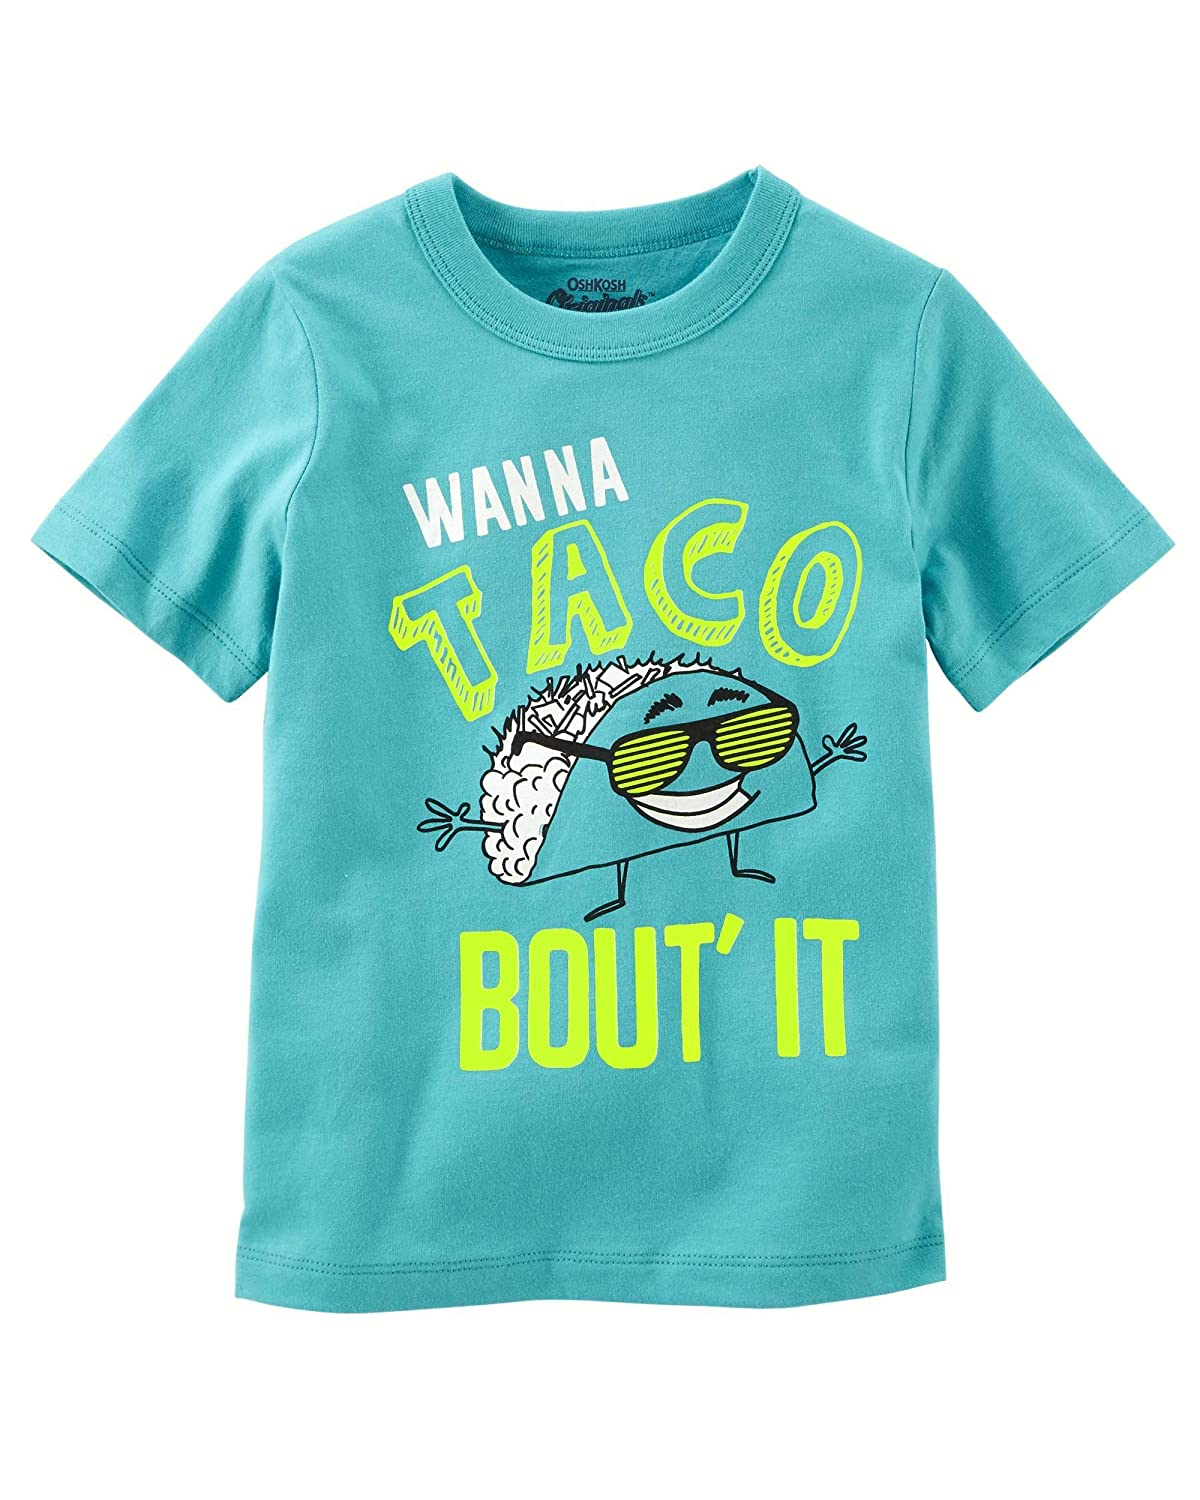 9-12m OshKosh Boys Wanna Taco Bout It Tee Turquoise